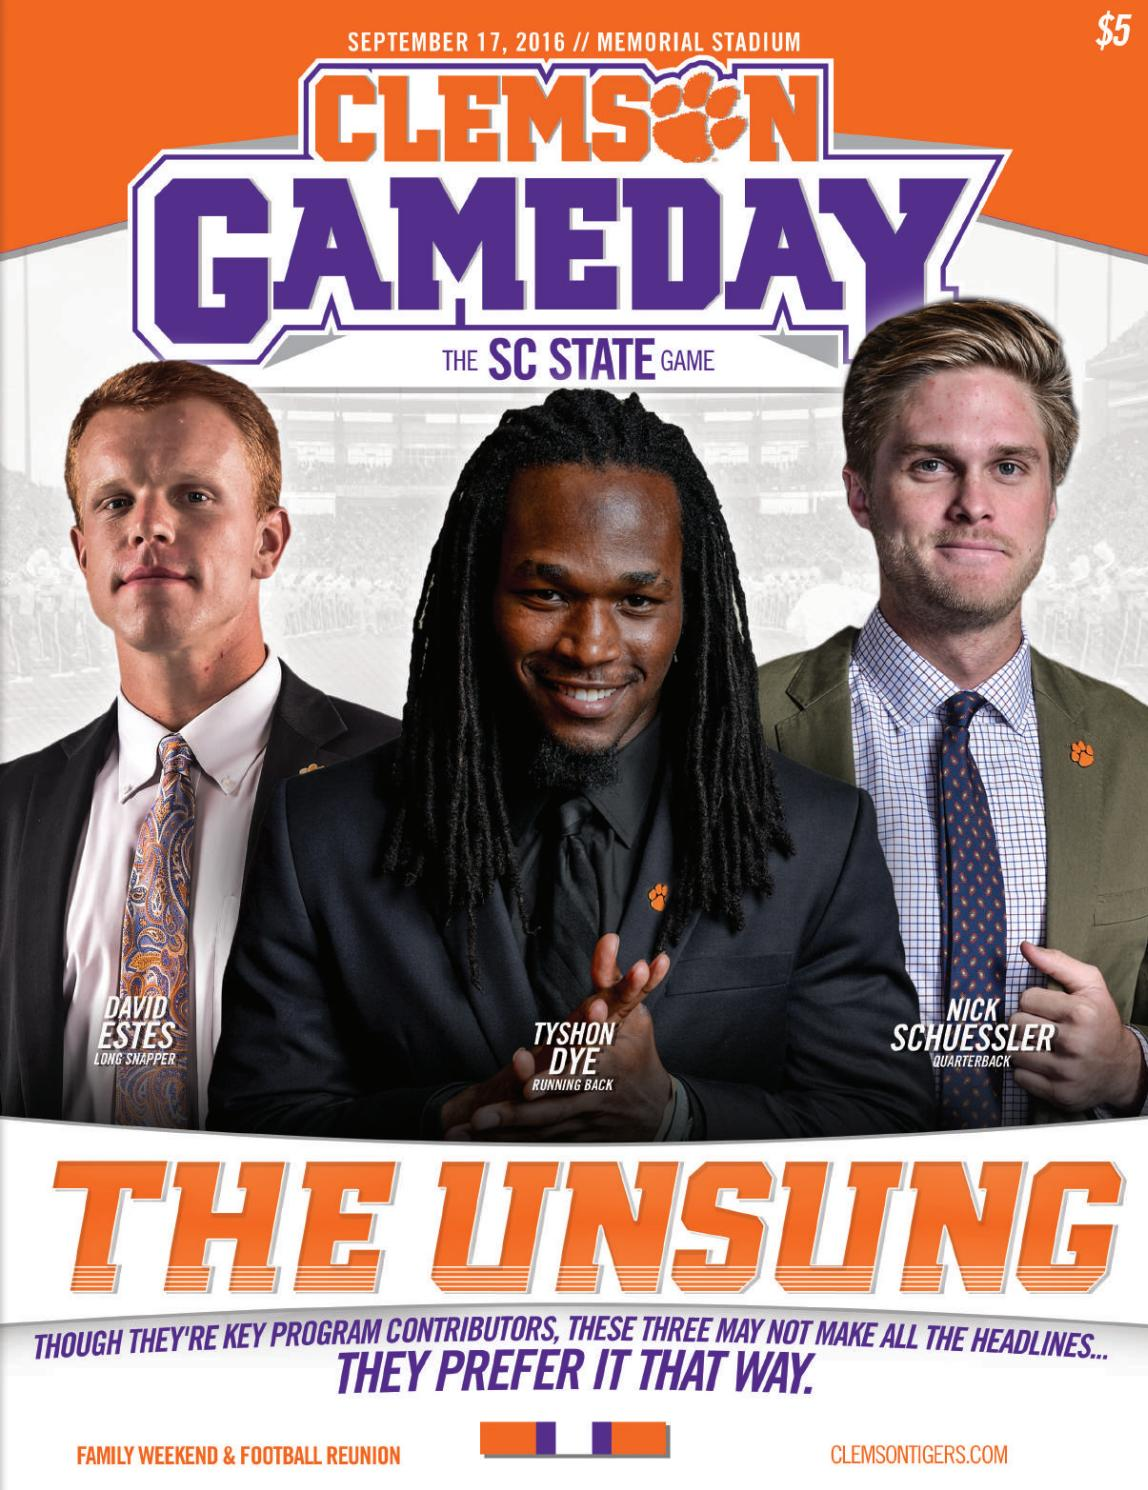 Clemson Football // 2016 SC State Gameday Program by Clemson